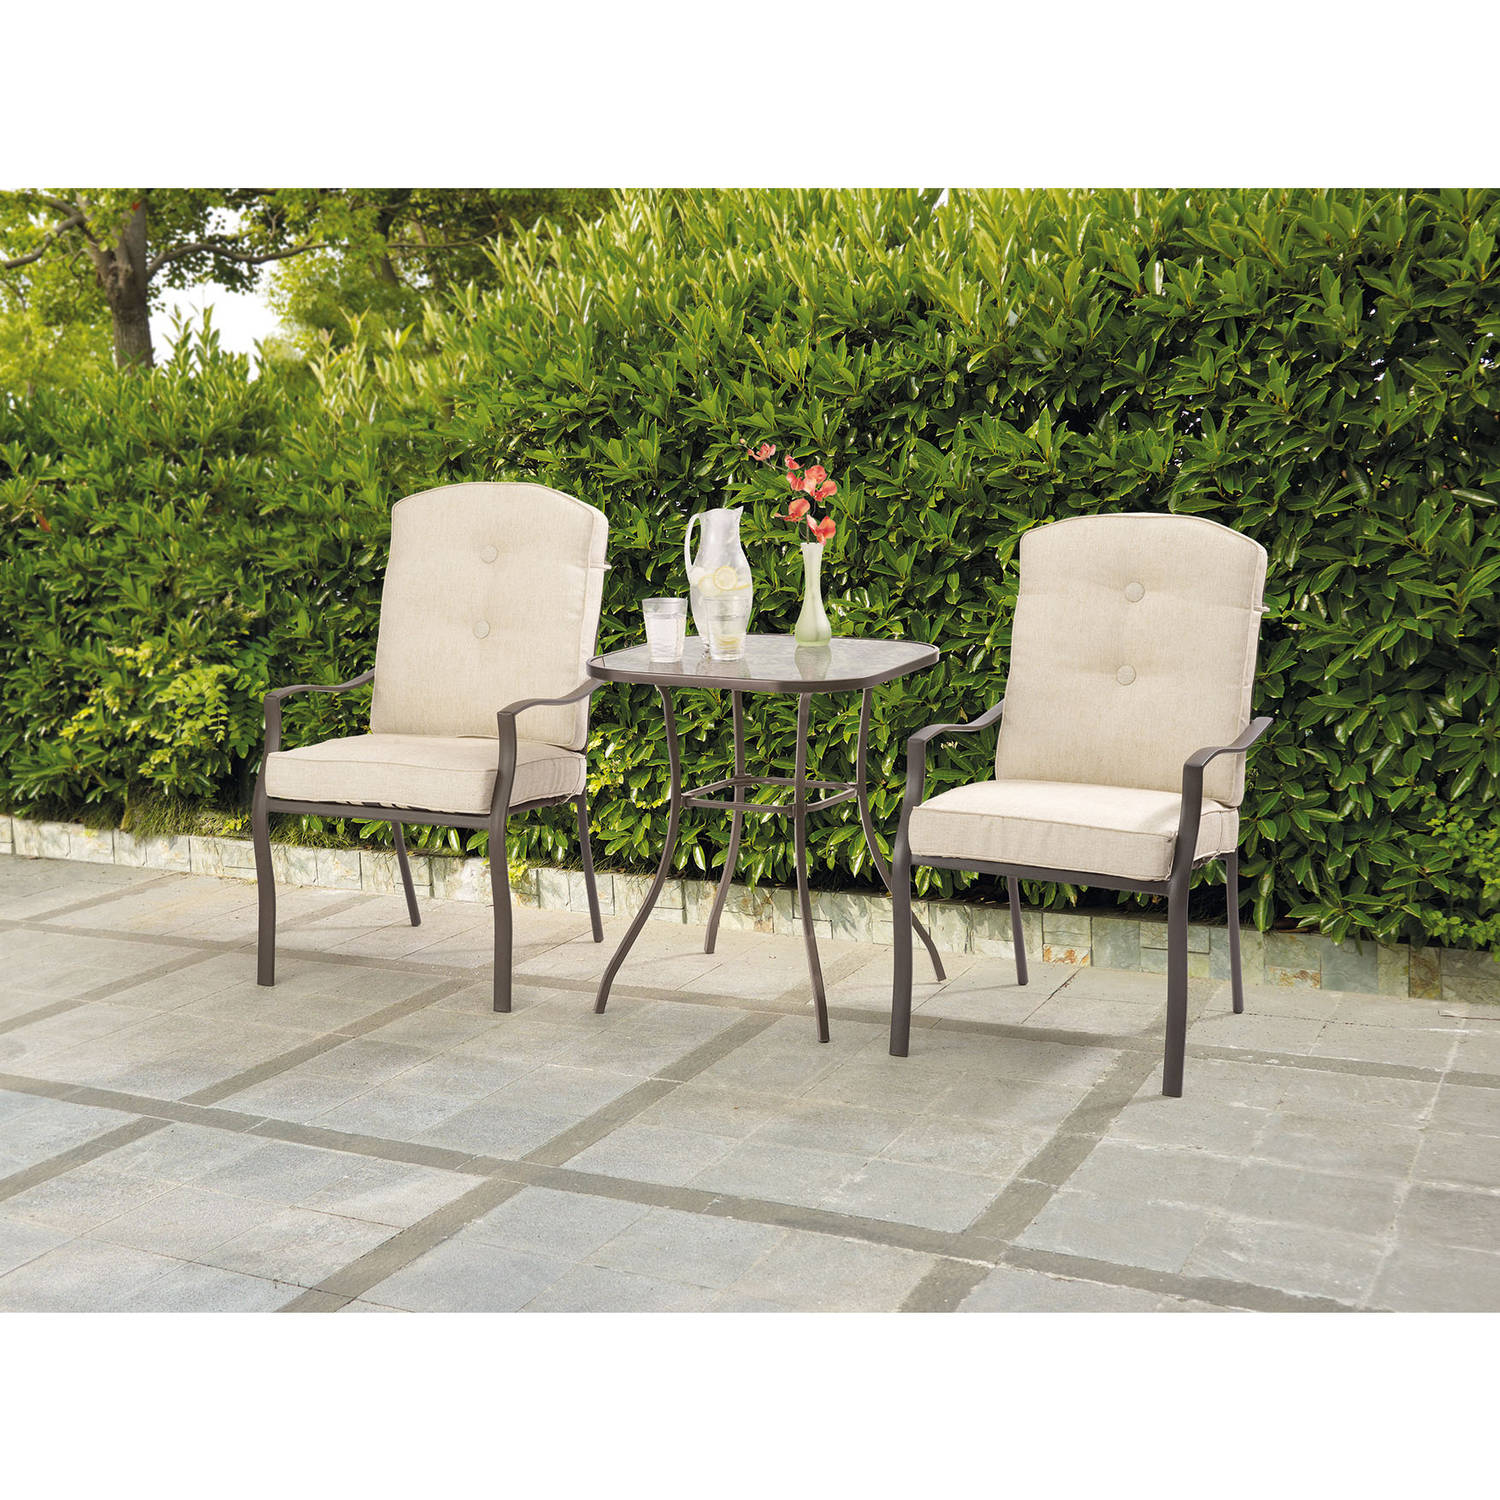 Mainstays Ashwood Heights 3-Piece Bistro Set